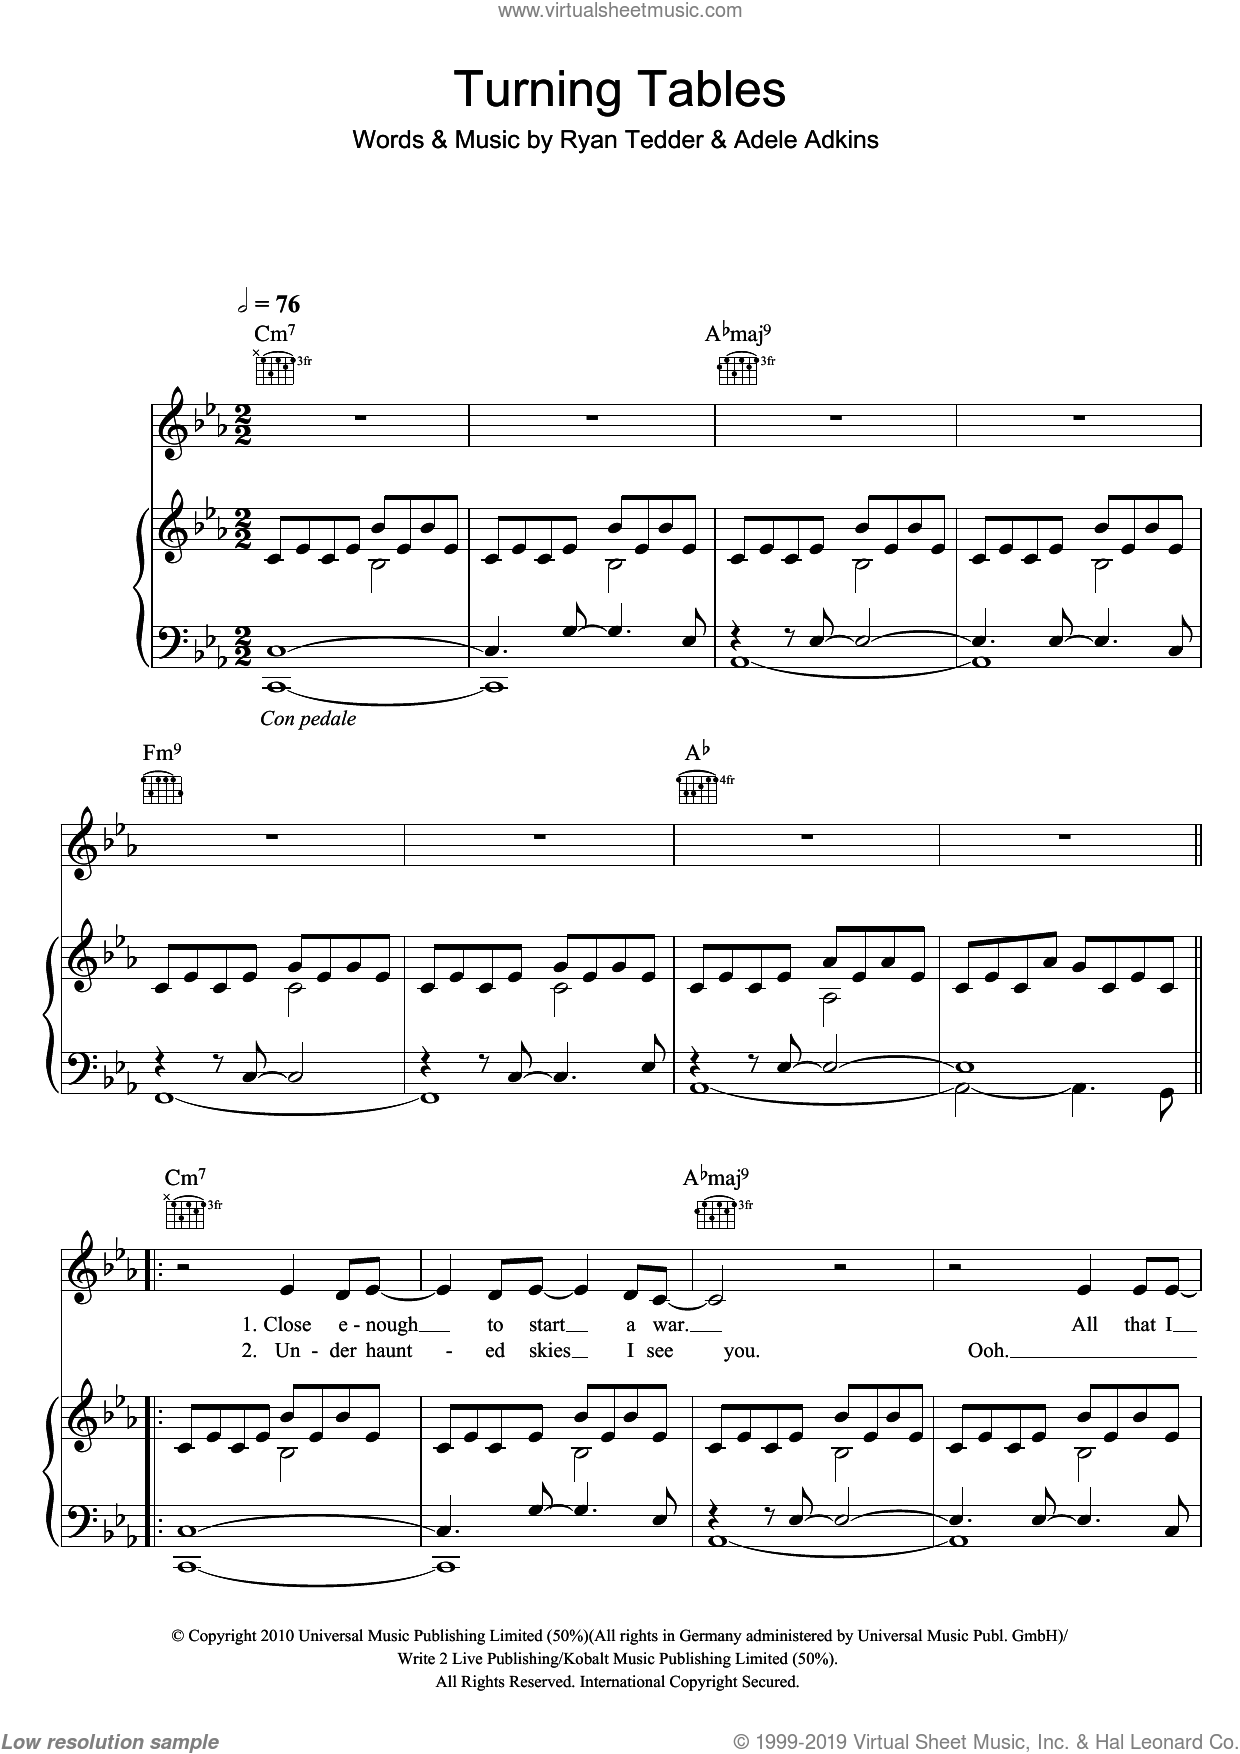 Turning Tables sheet music for voice, piano or guitar by Ryan Tedder